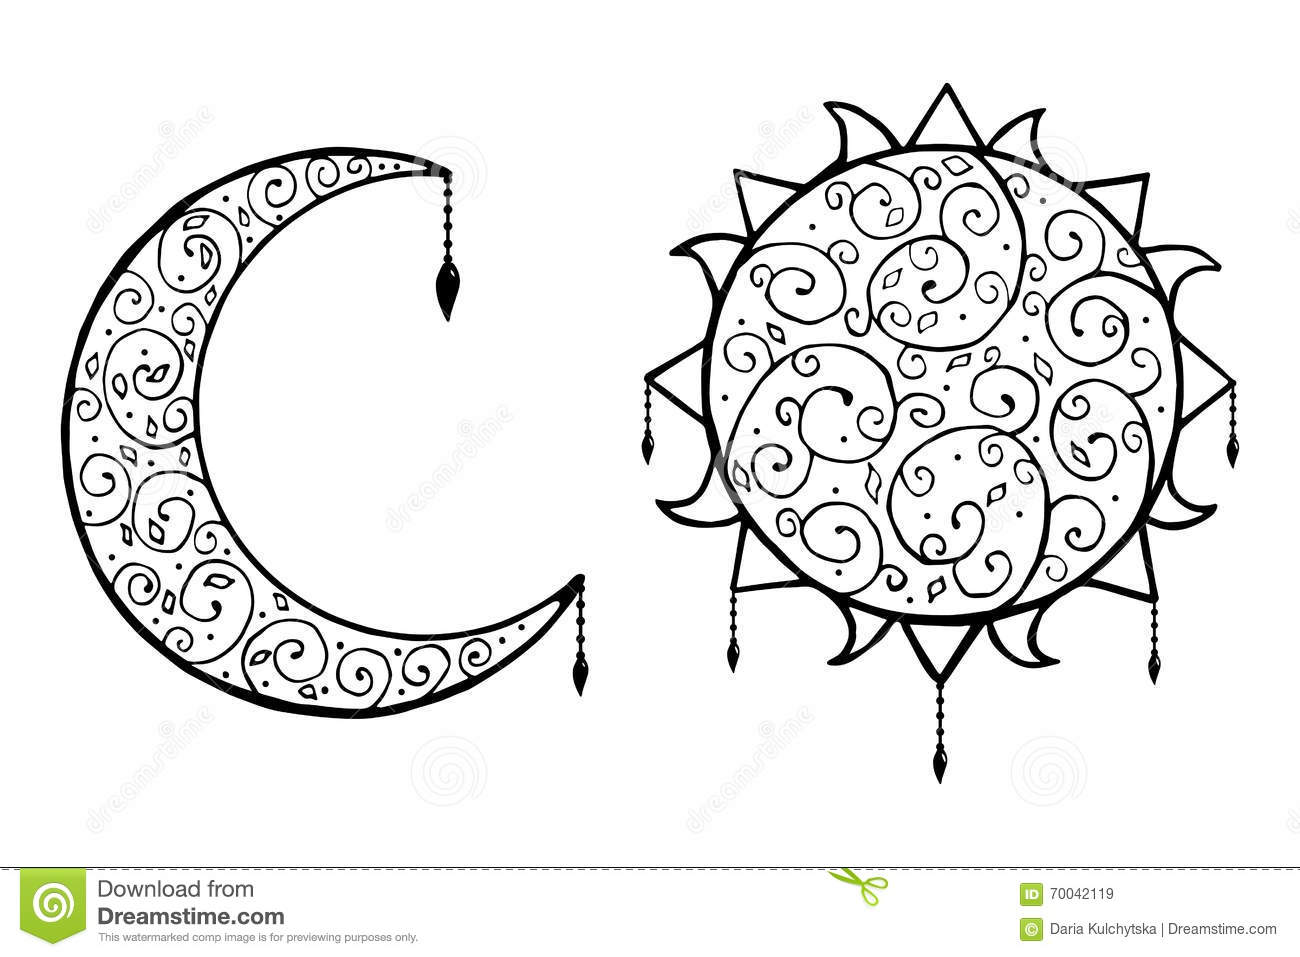 Decorative doodle sun and moon with isolated vector illustration on